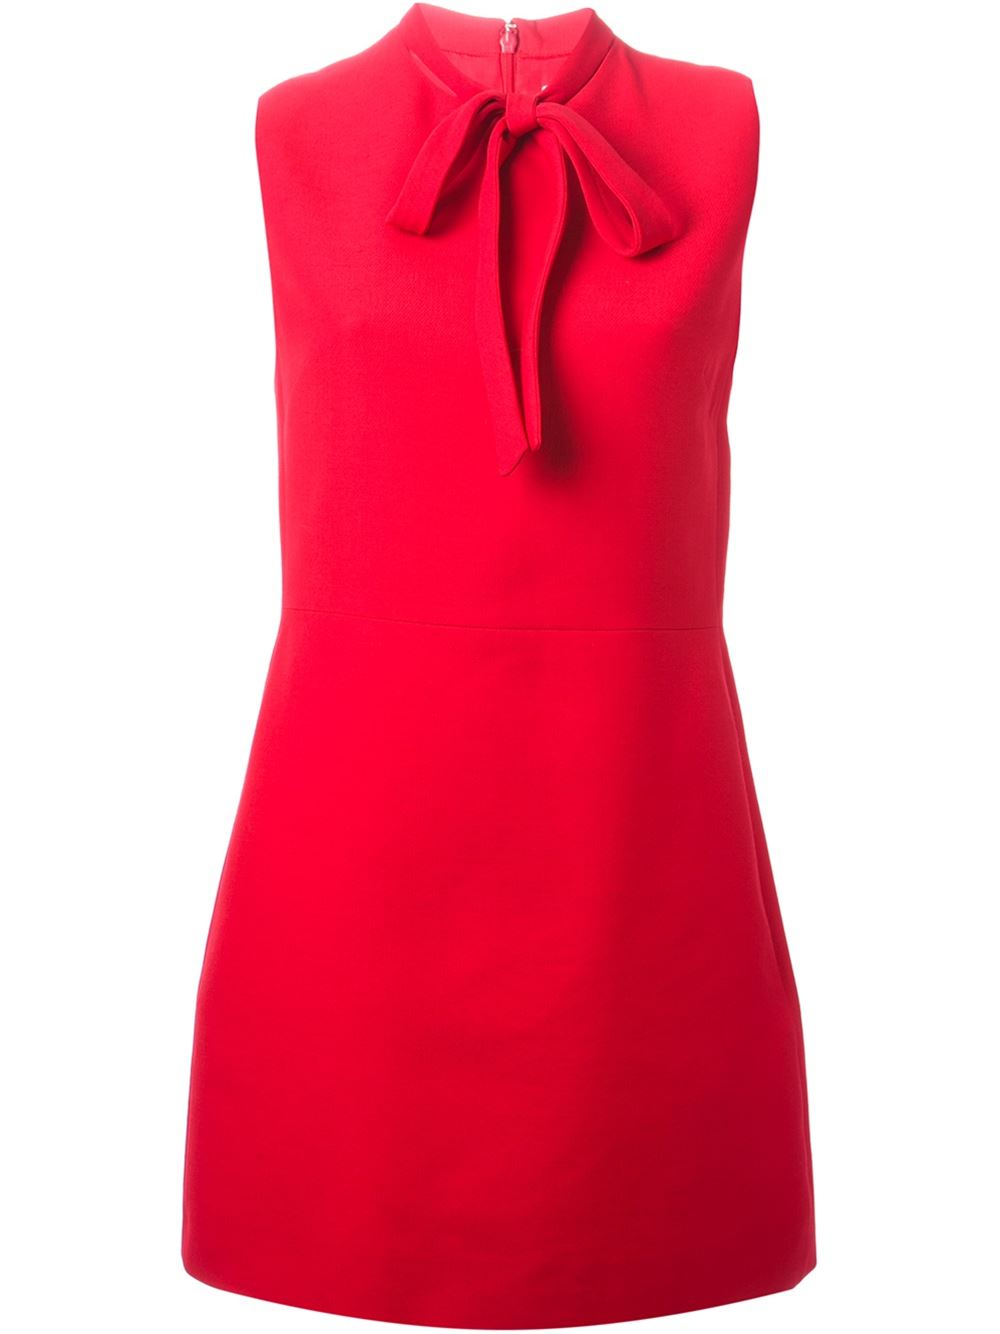 lyst valentino bow collar dress in red